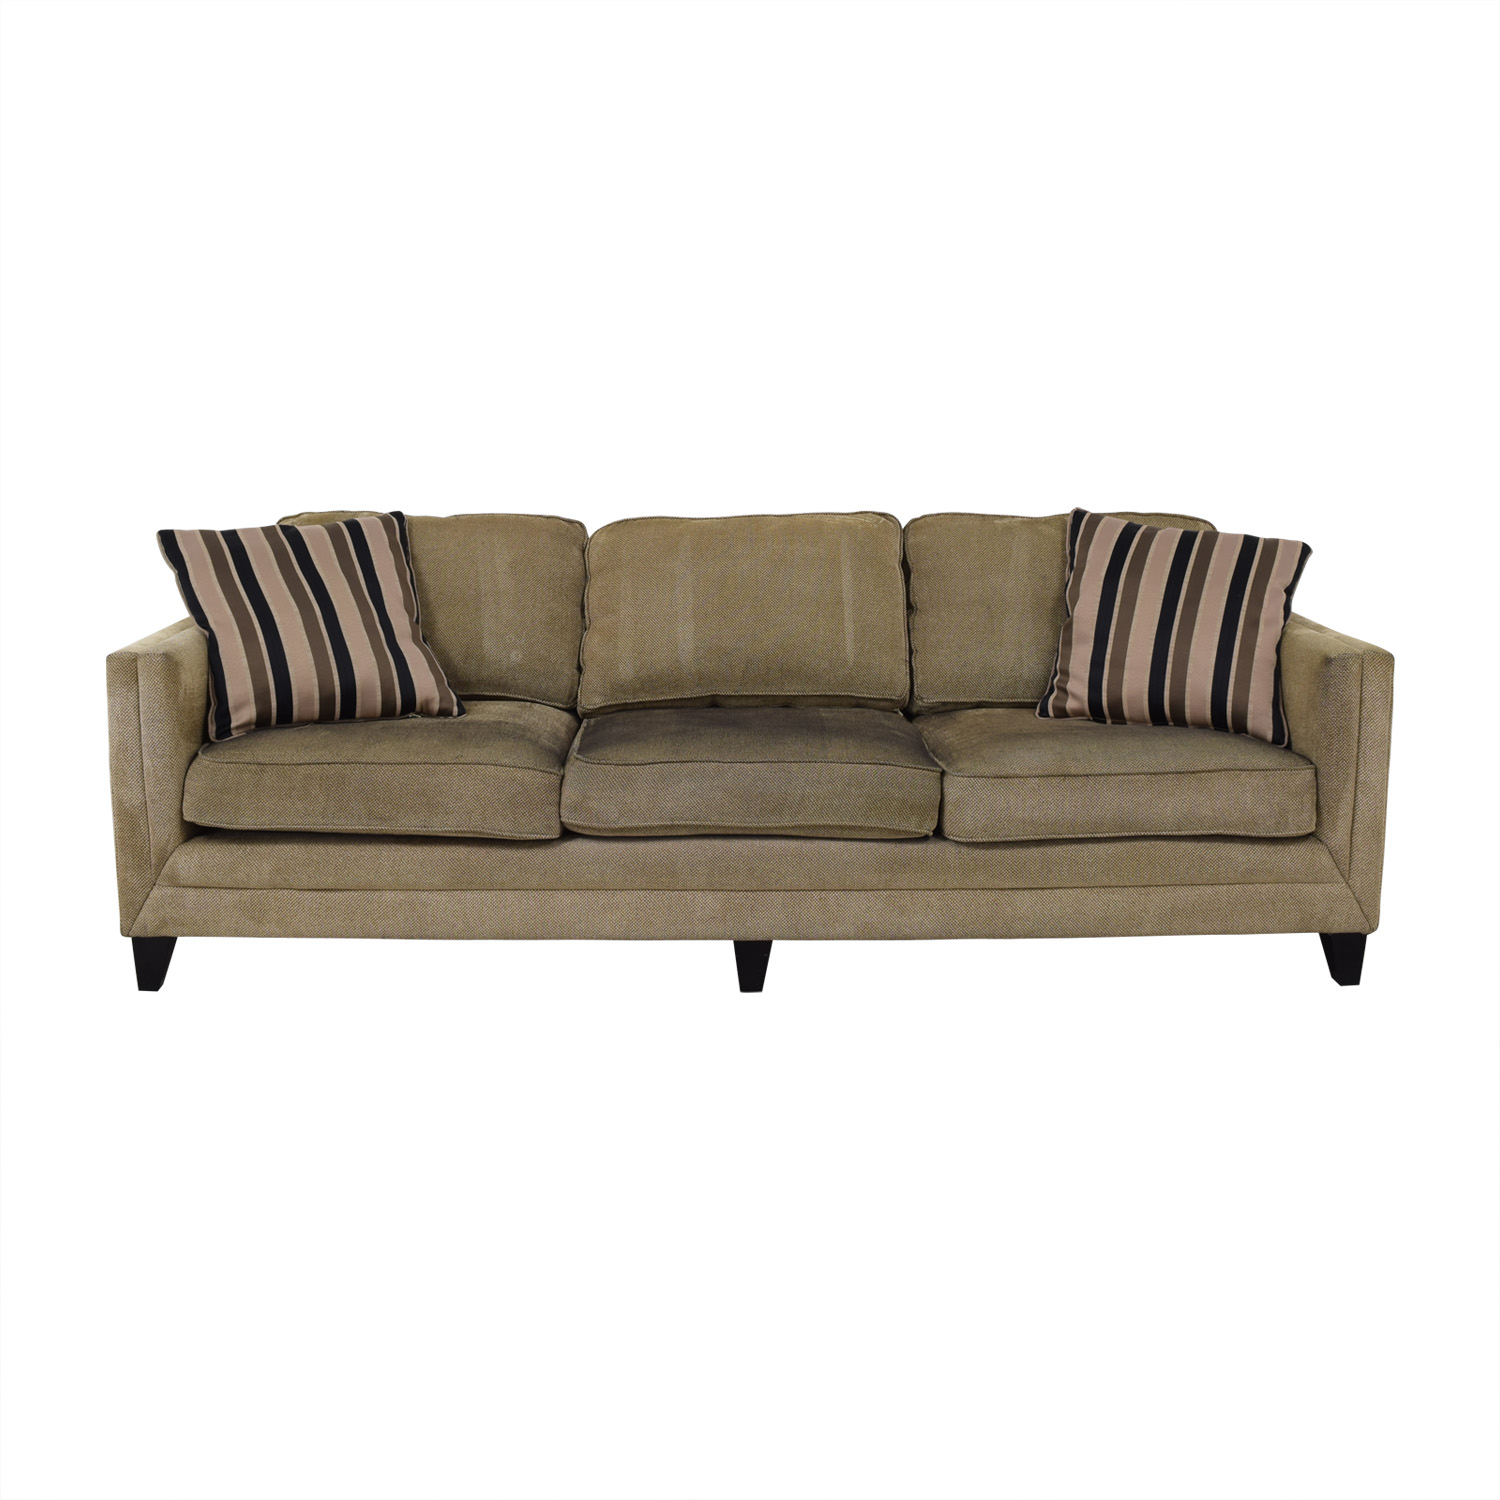 Brown Three-Seater Modern Sofa Sofas